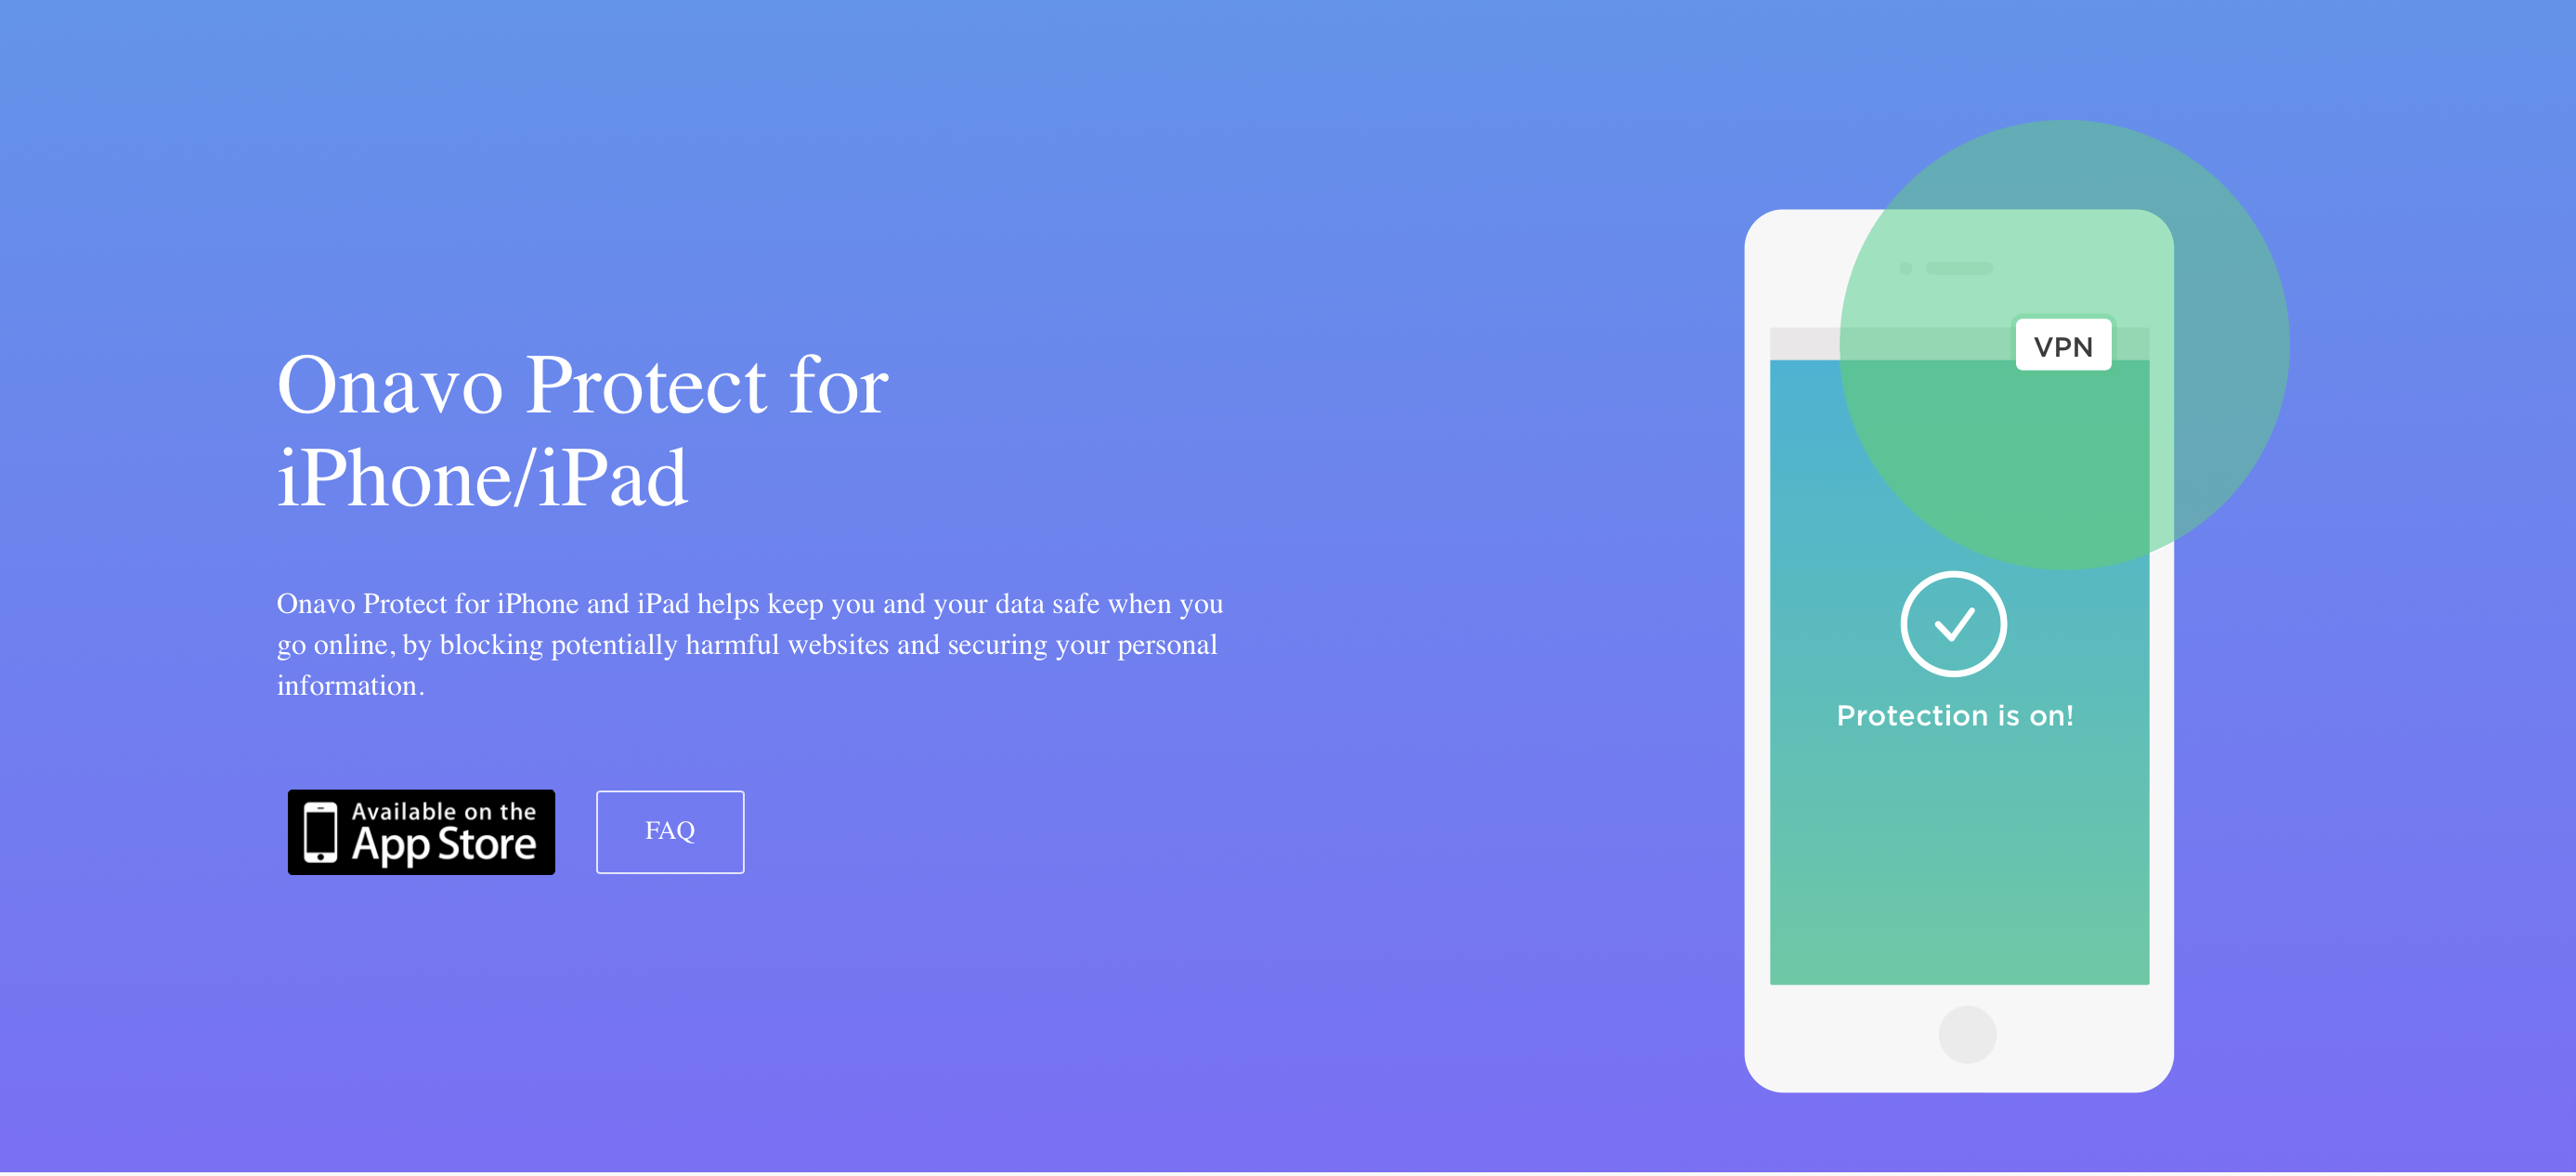 Facebook's Onavo Protect VPN App Is Removed from the App Store for